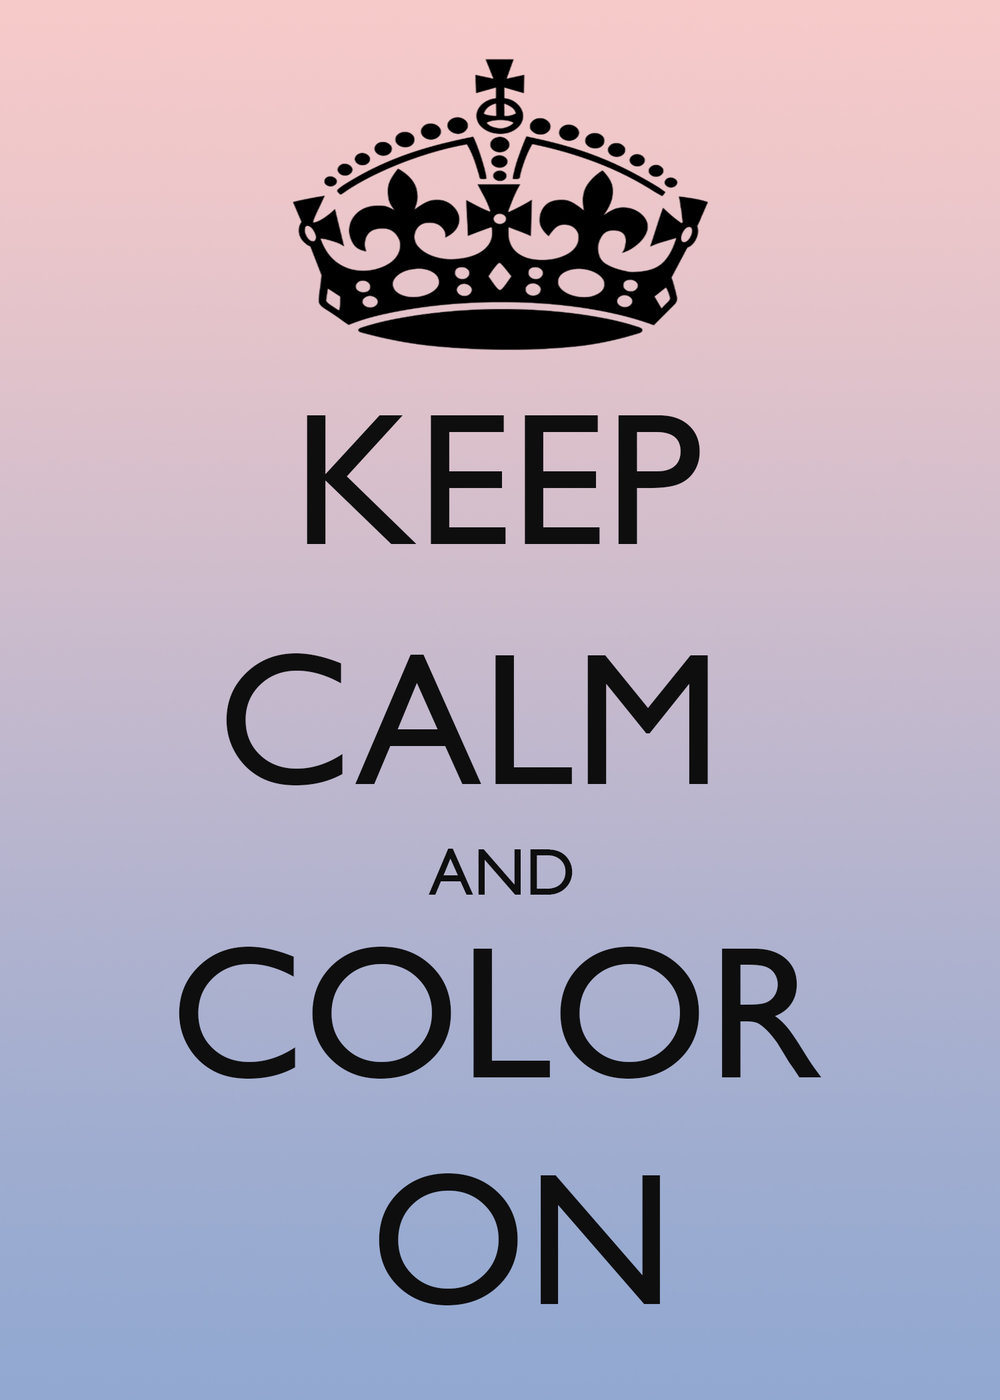 Keep Calm and Color On (1)